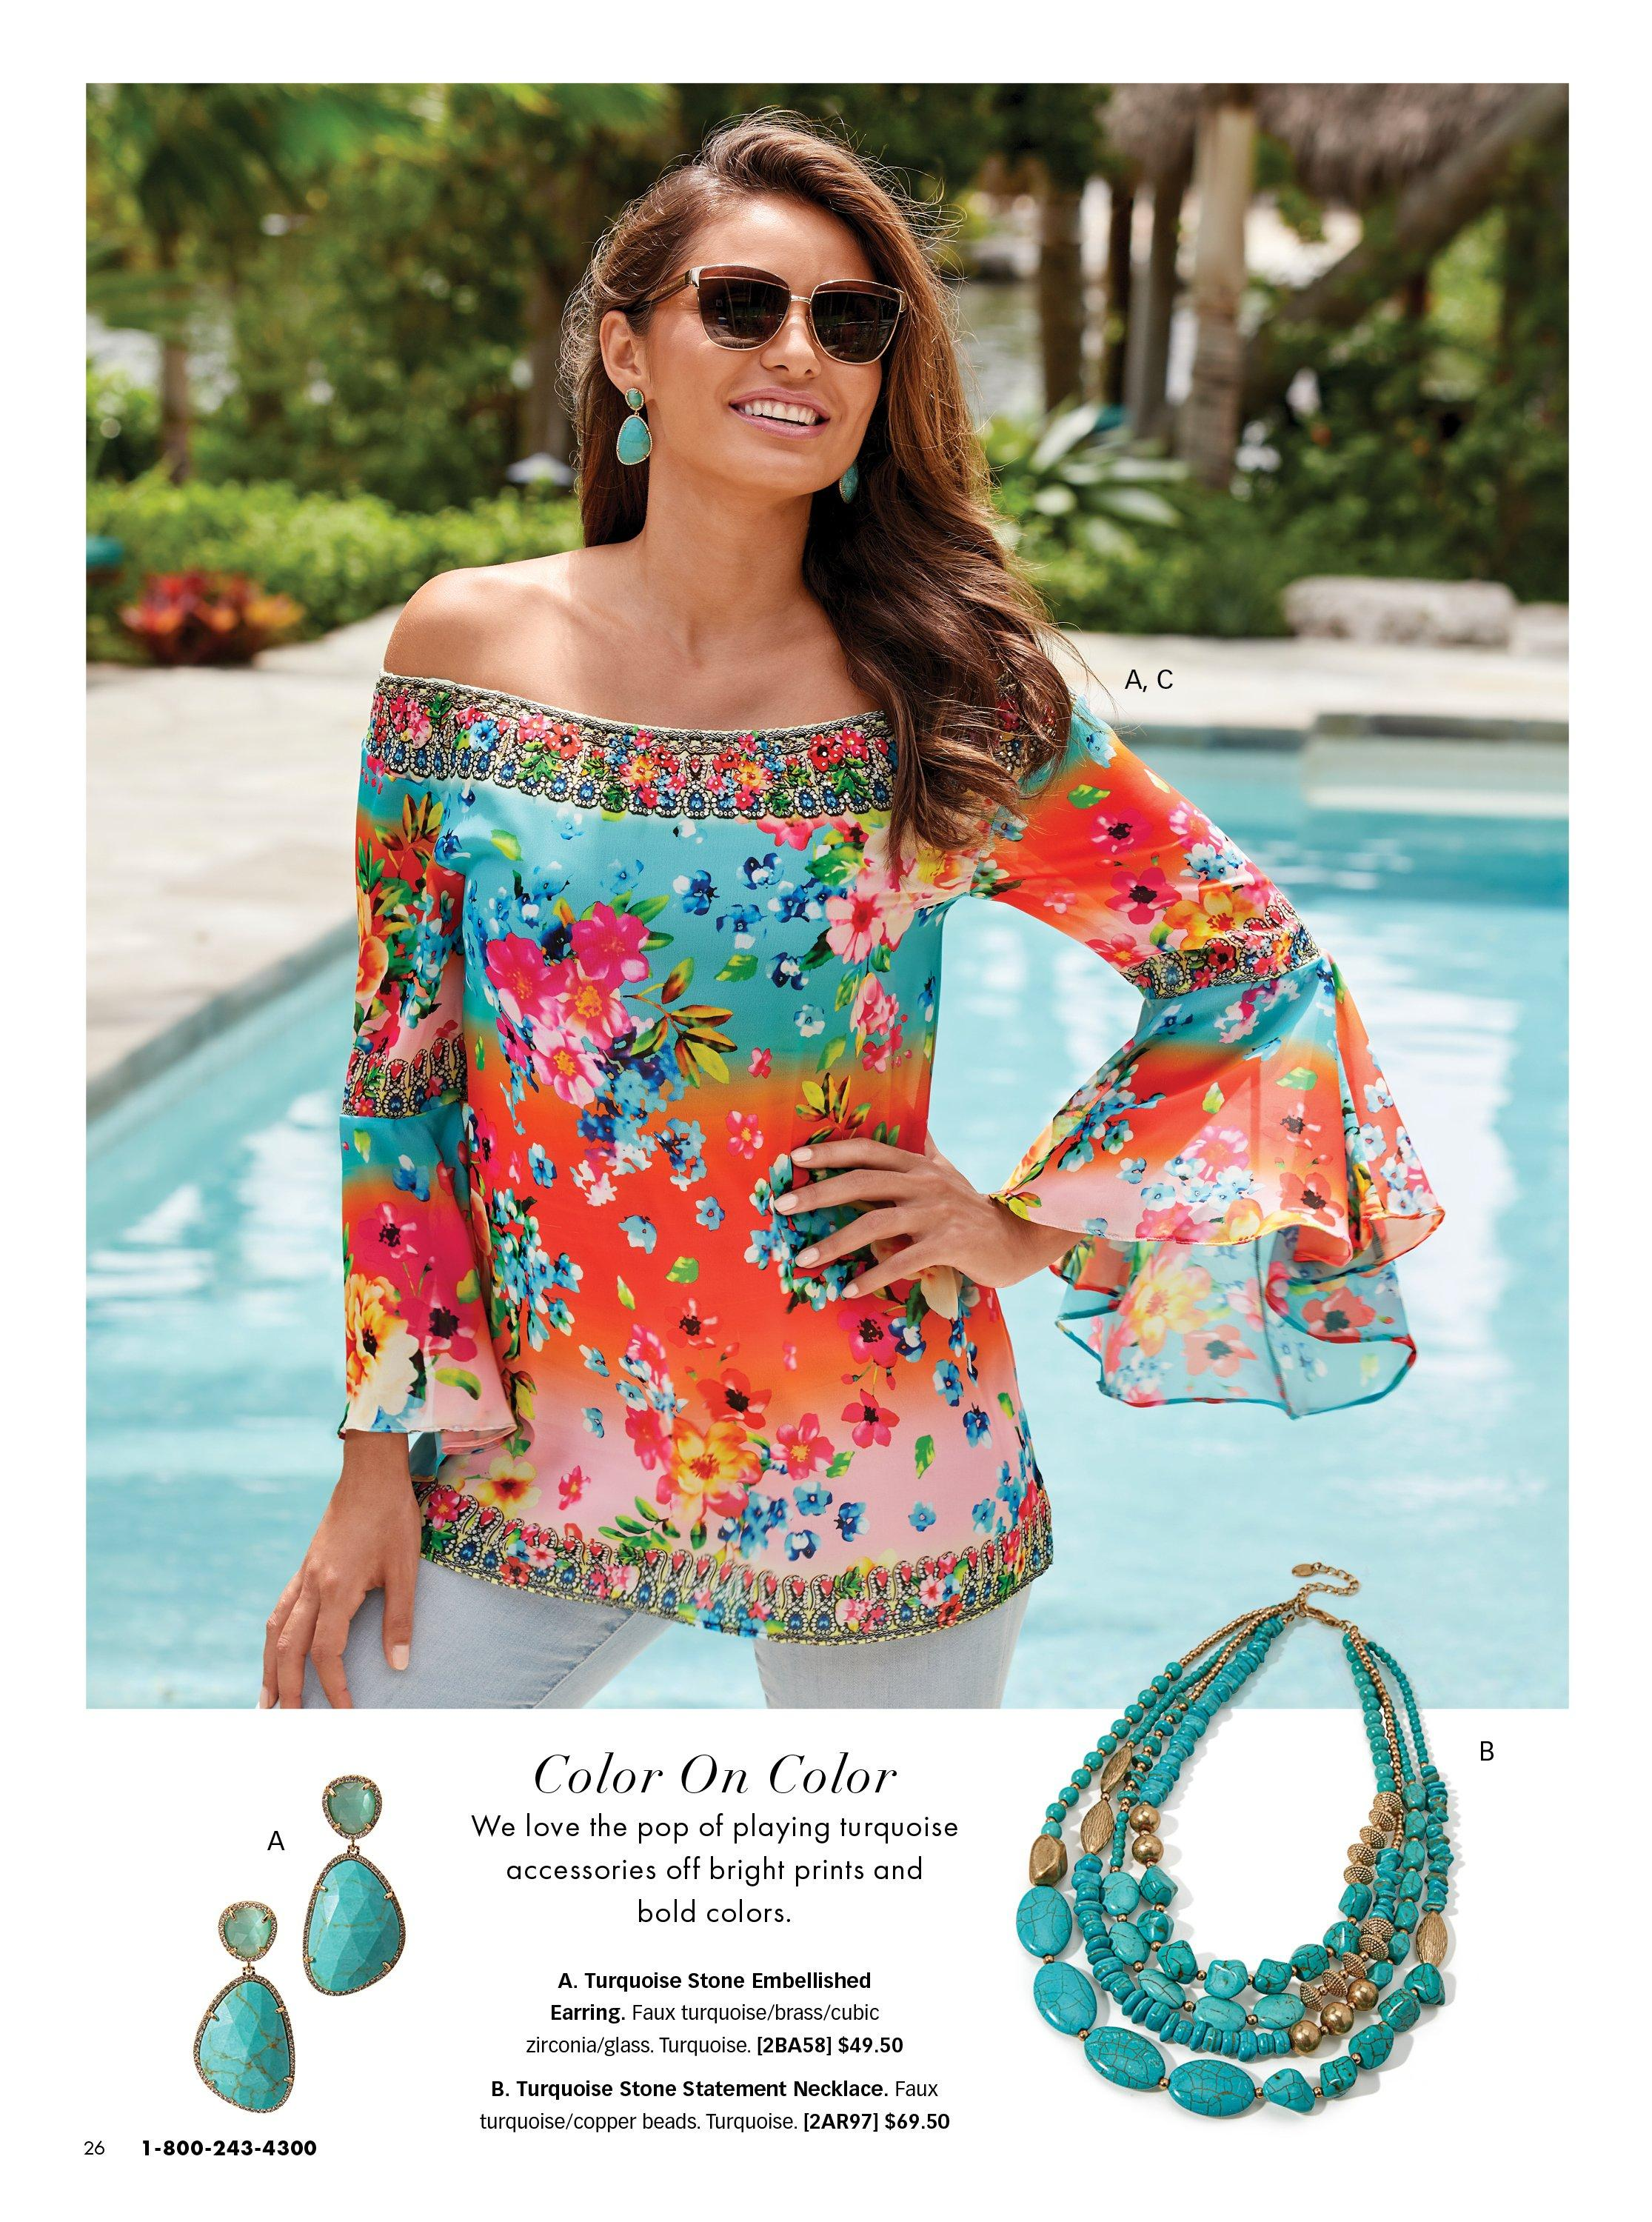 model wearing a multicolored off-the-shoulder flare sleeve floral top, turquoise earrings, and jeans. also shown: turquoise earrings and turquoise necklace.